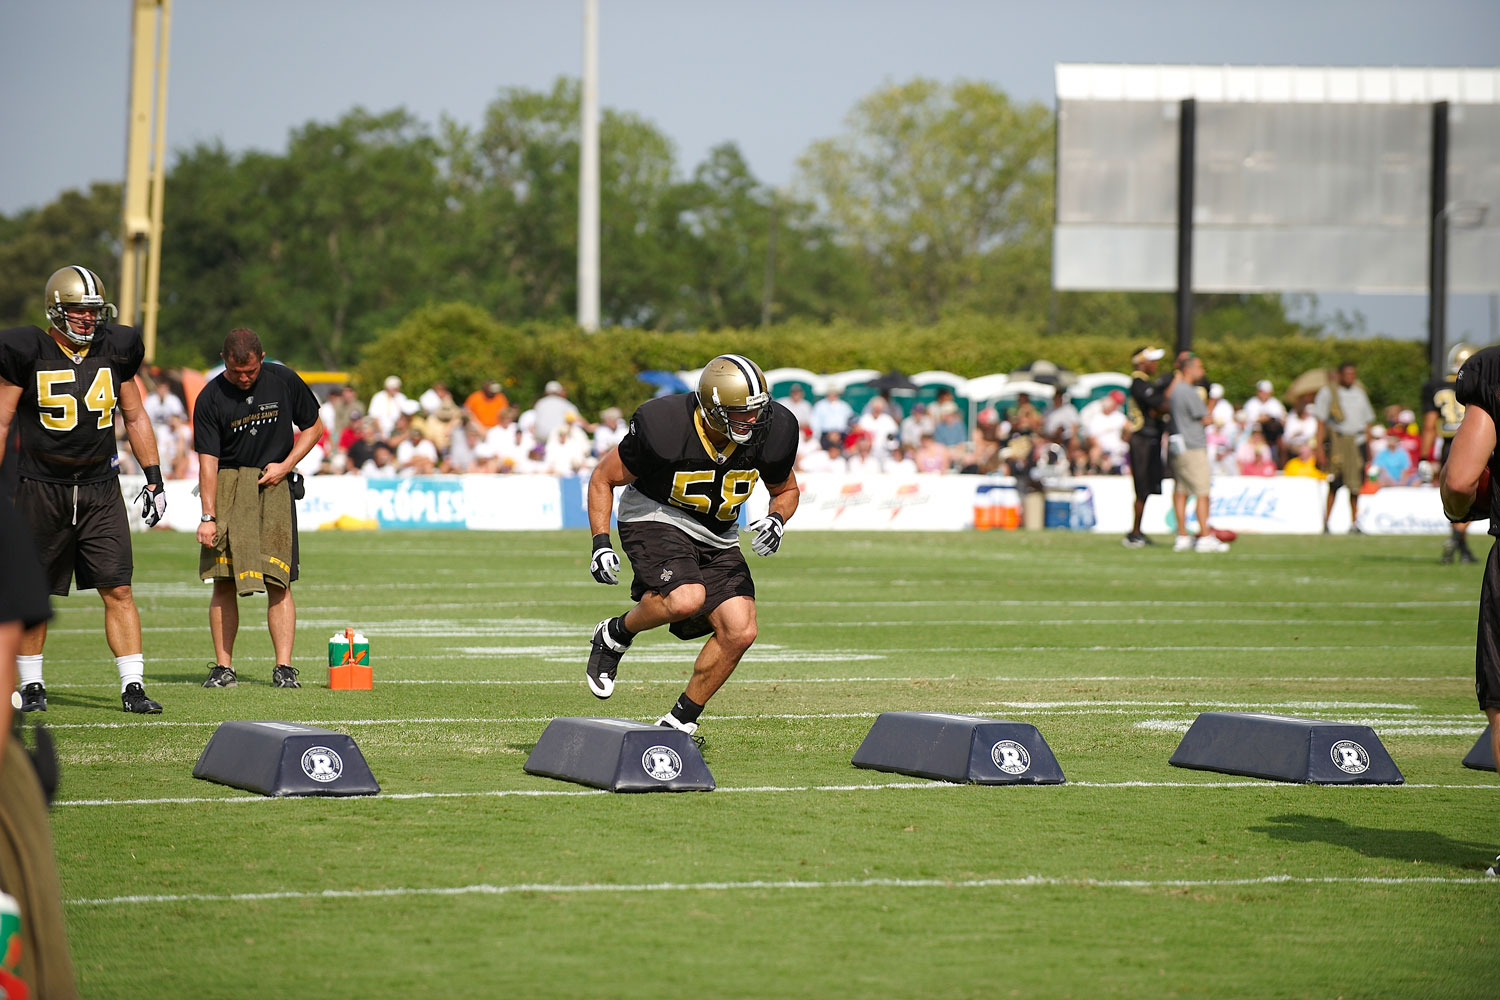 Scott Schanle, of the New Orleans Saints, running agility drills during training camp at Millsaps College in 2008.